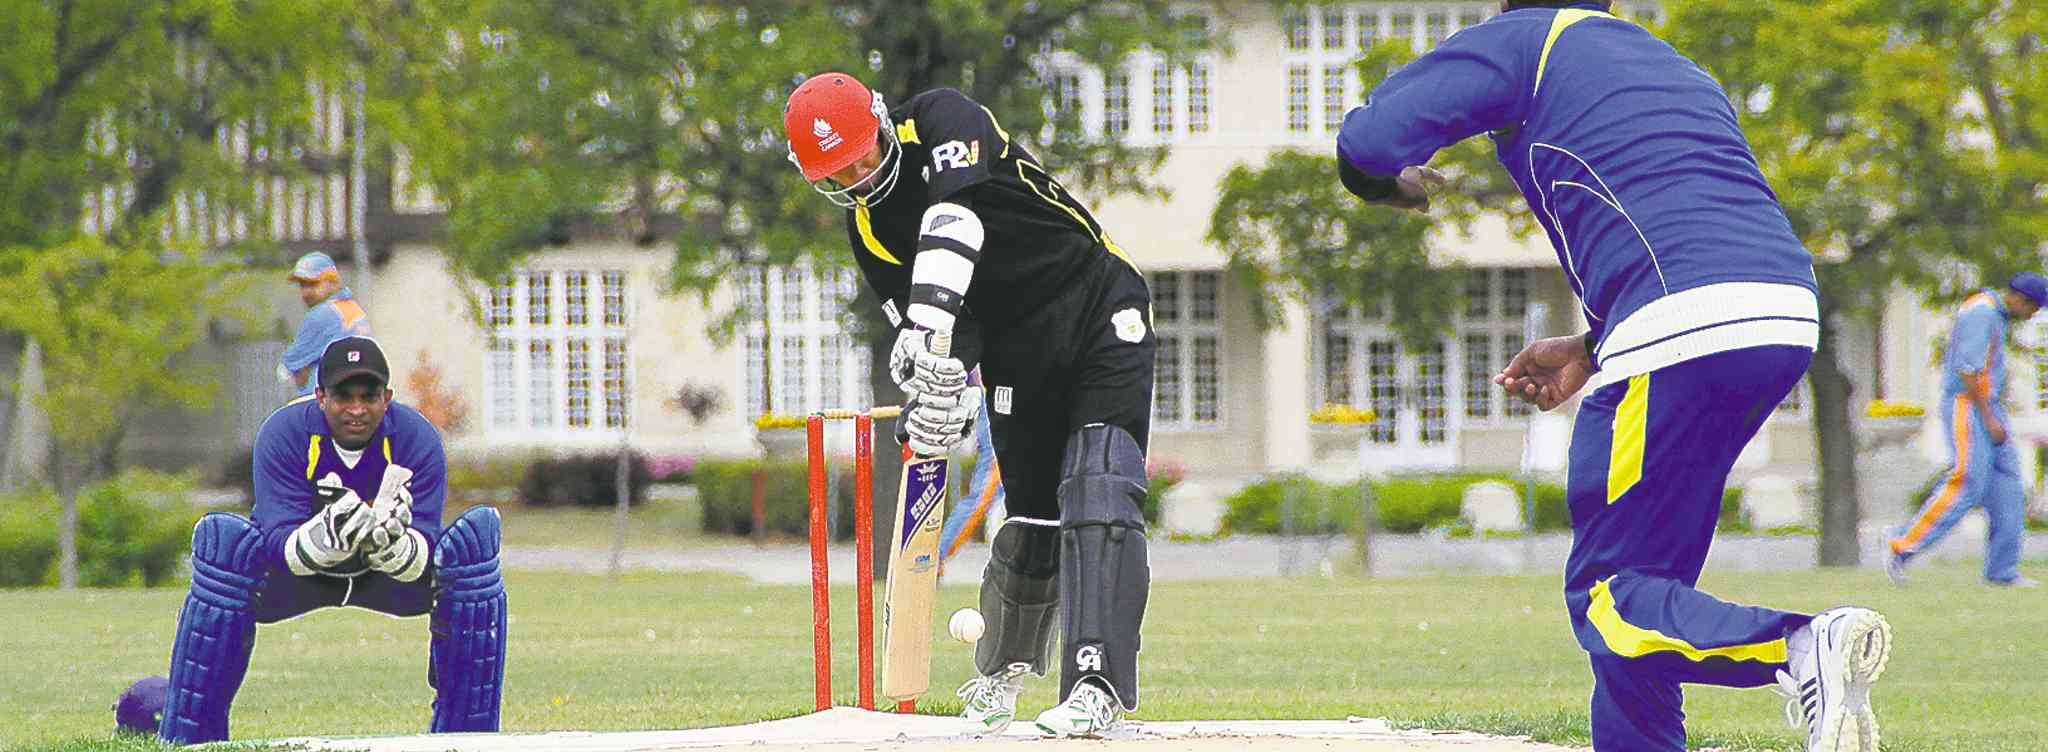 Dakota Collegiate will soon be helping young batsmen hone their skills in the venerable game of cricket. Next spring and summer, kids from the southeast part of the city will be able to practise in two new batting cages at the St. Vital high school.